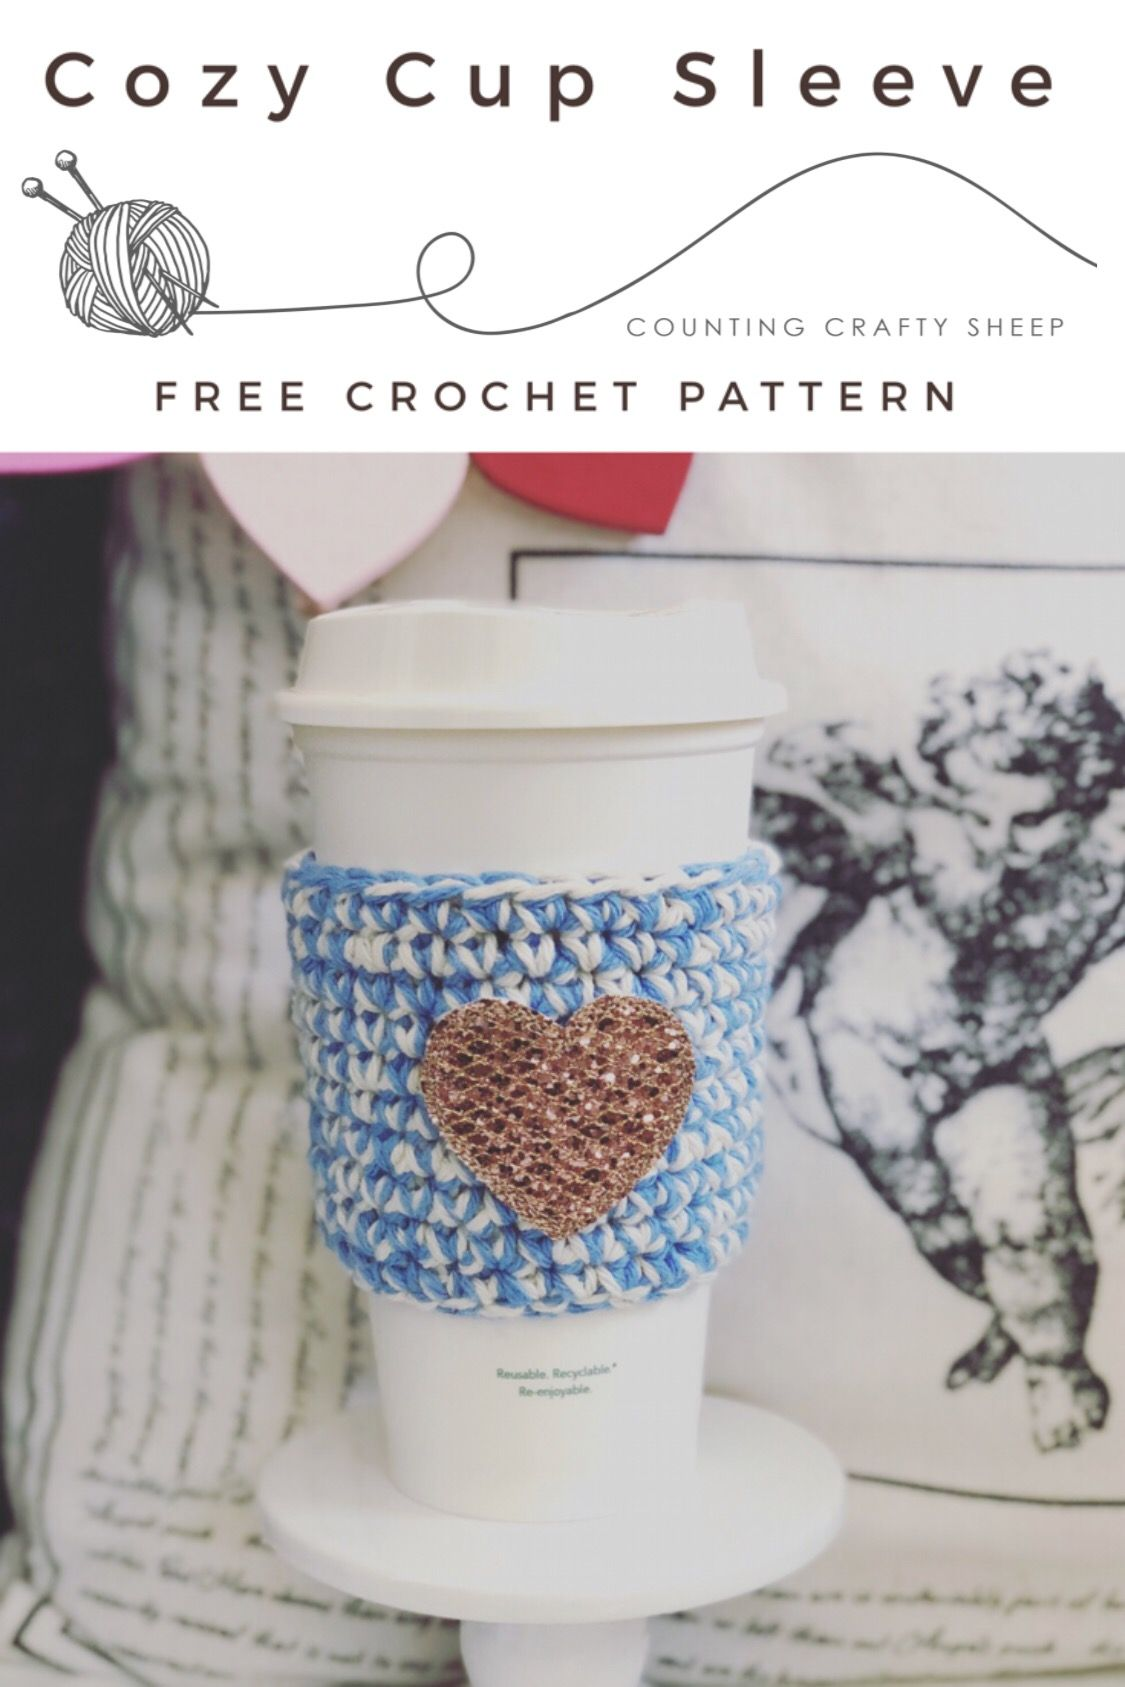 Best Crochet Cup Cozy a.k.a. Coffee Sleeve - Free Pattern | Product ...